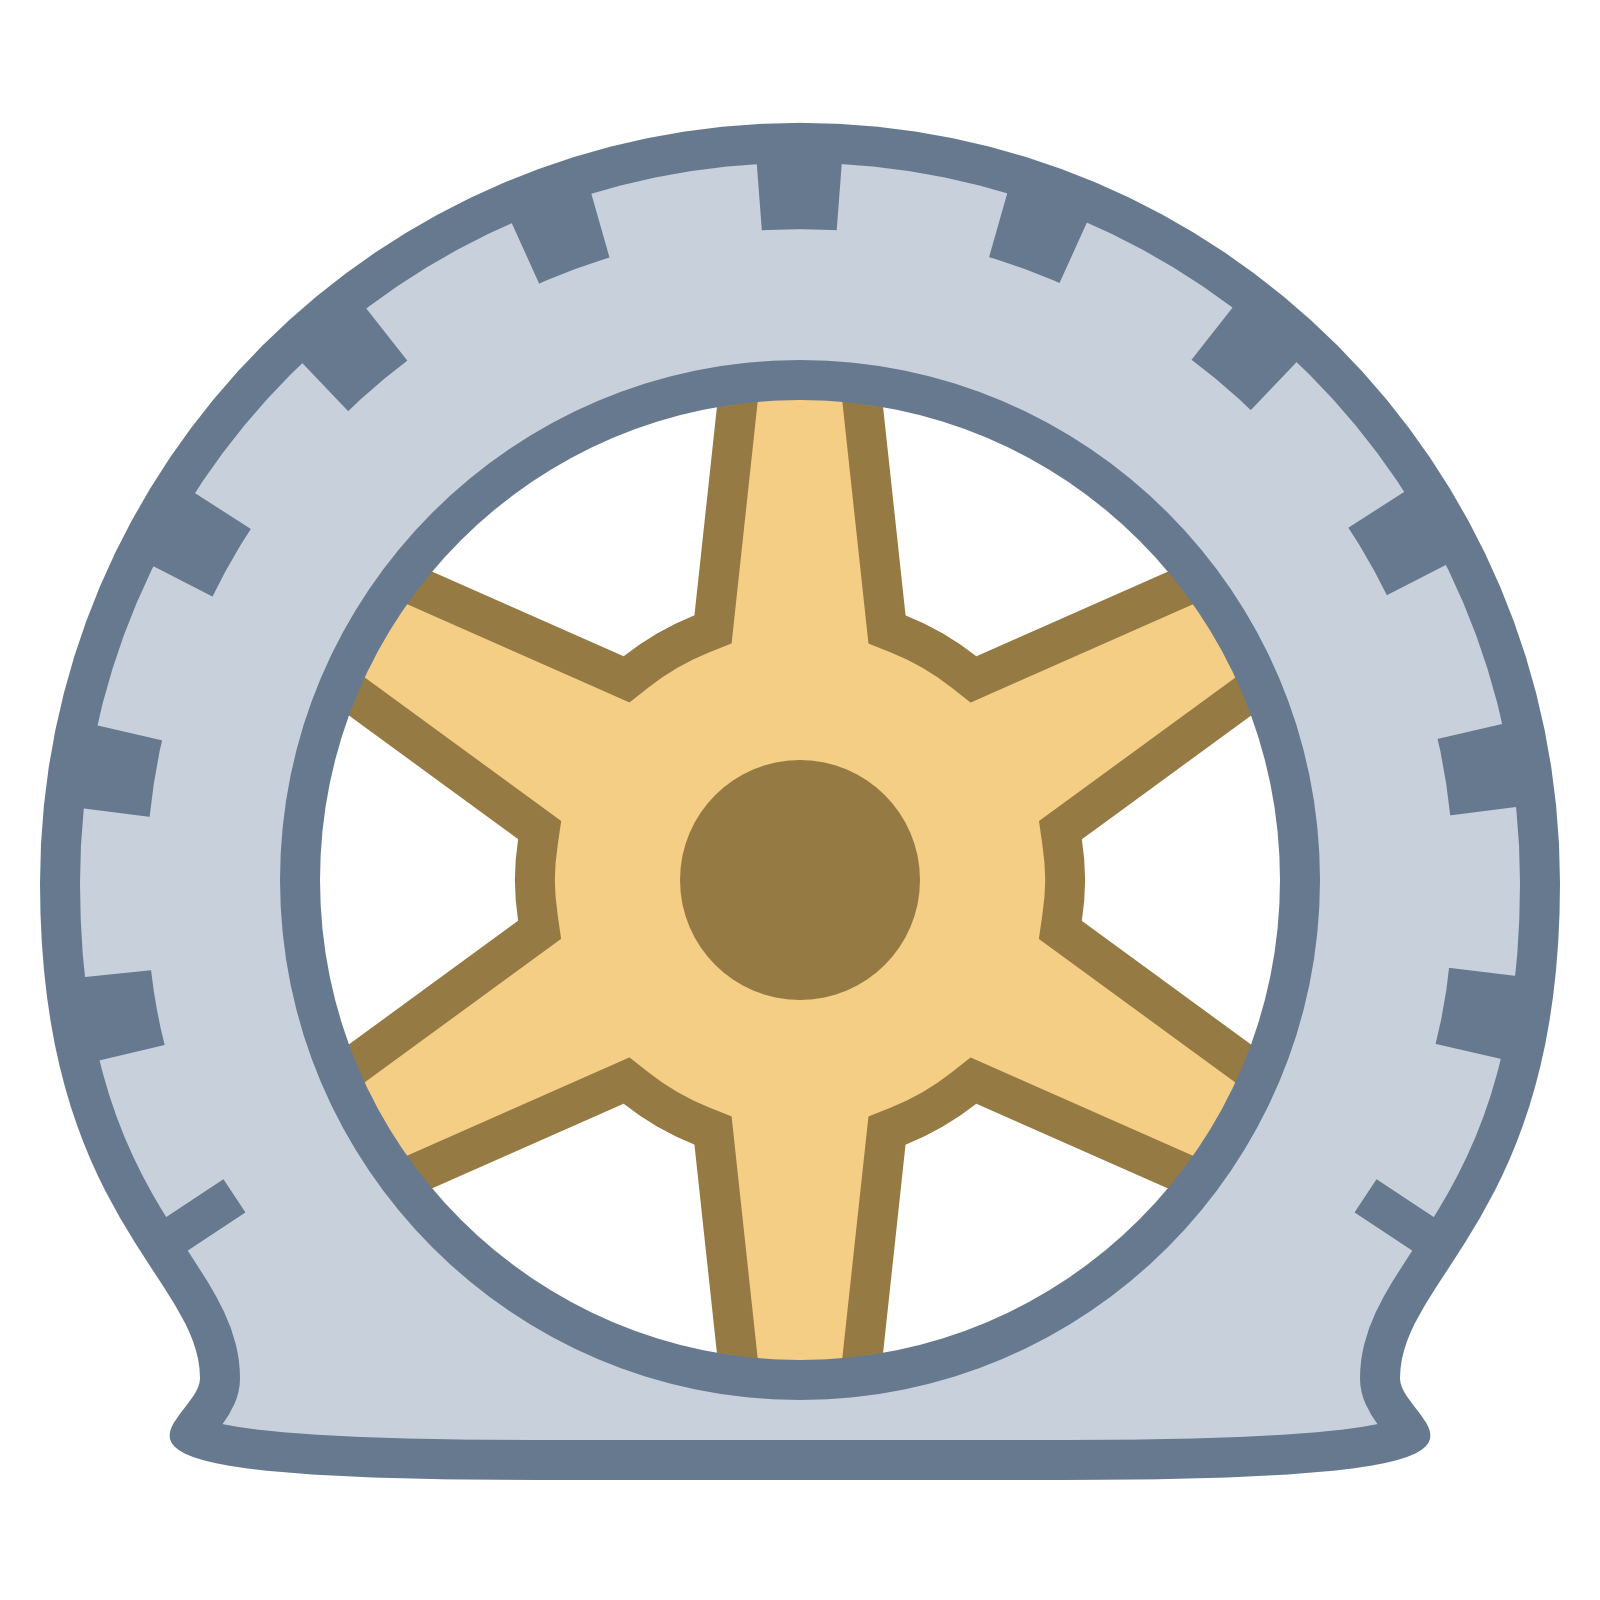 Wheel clipart flat tire. Car computer icons radial